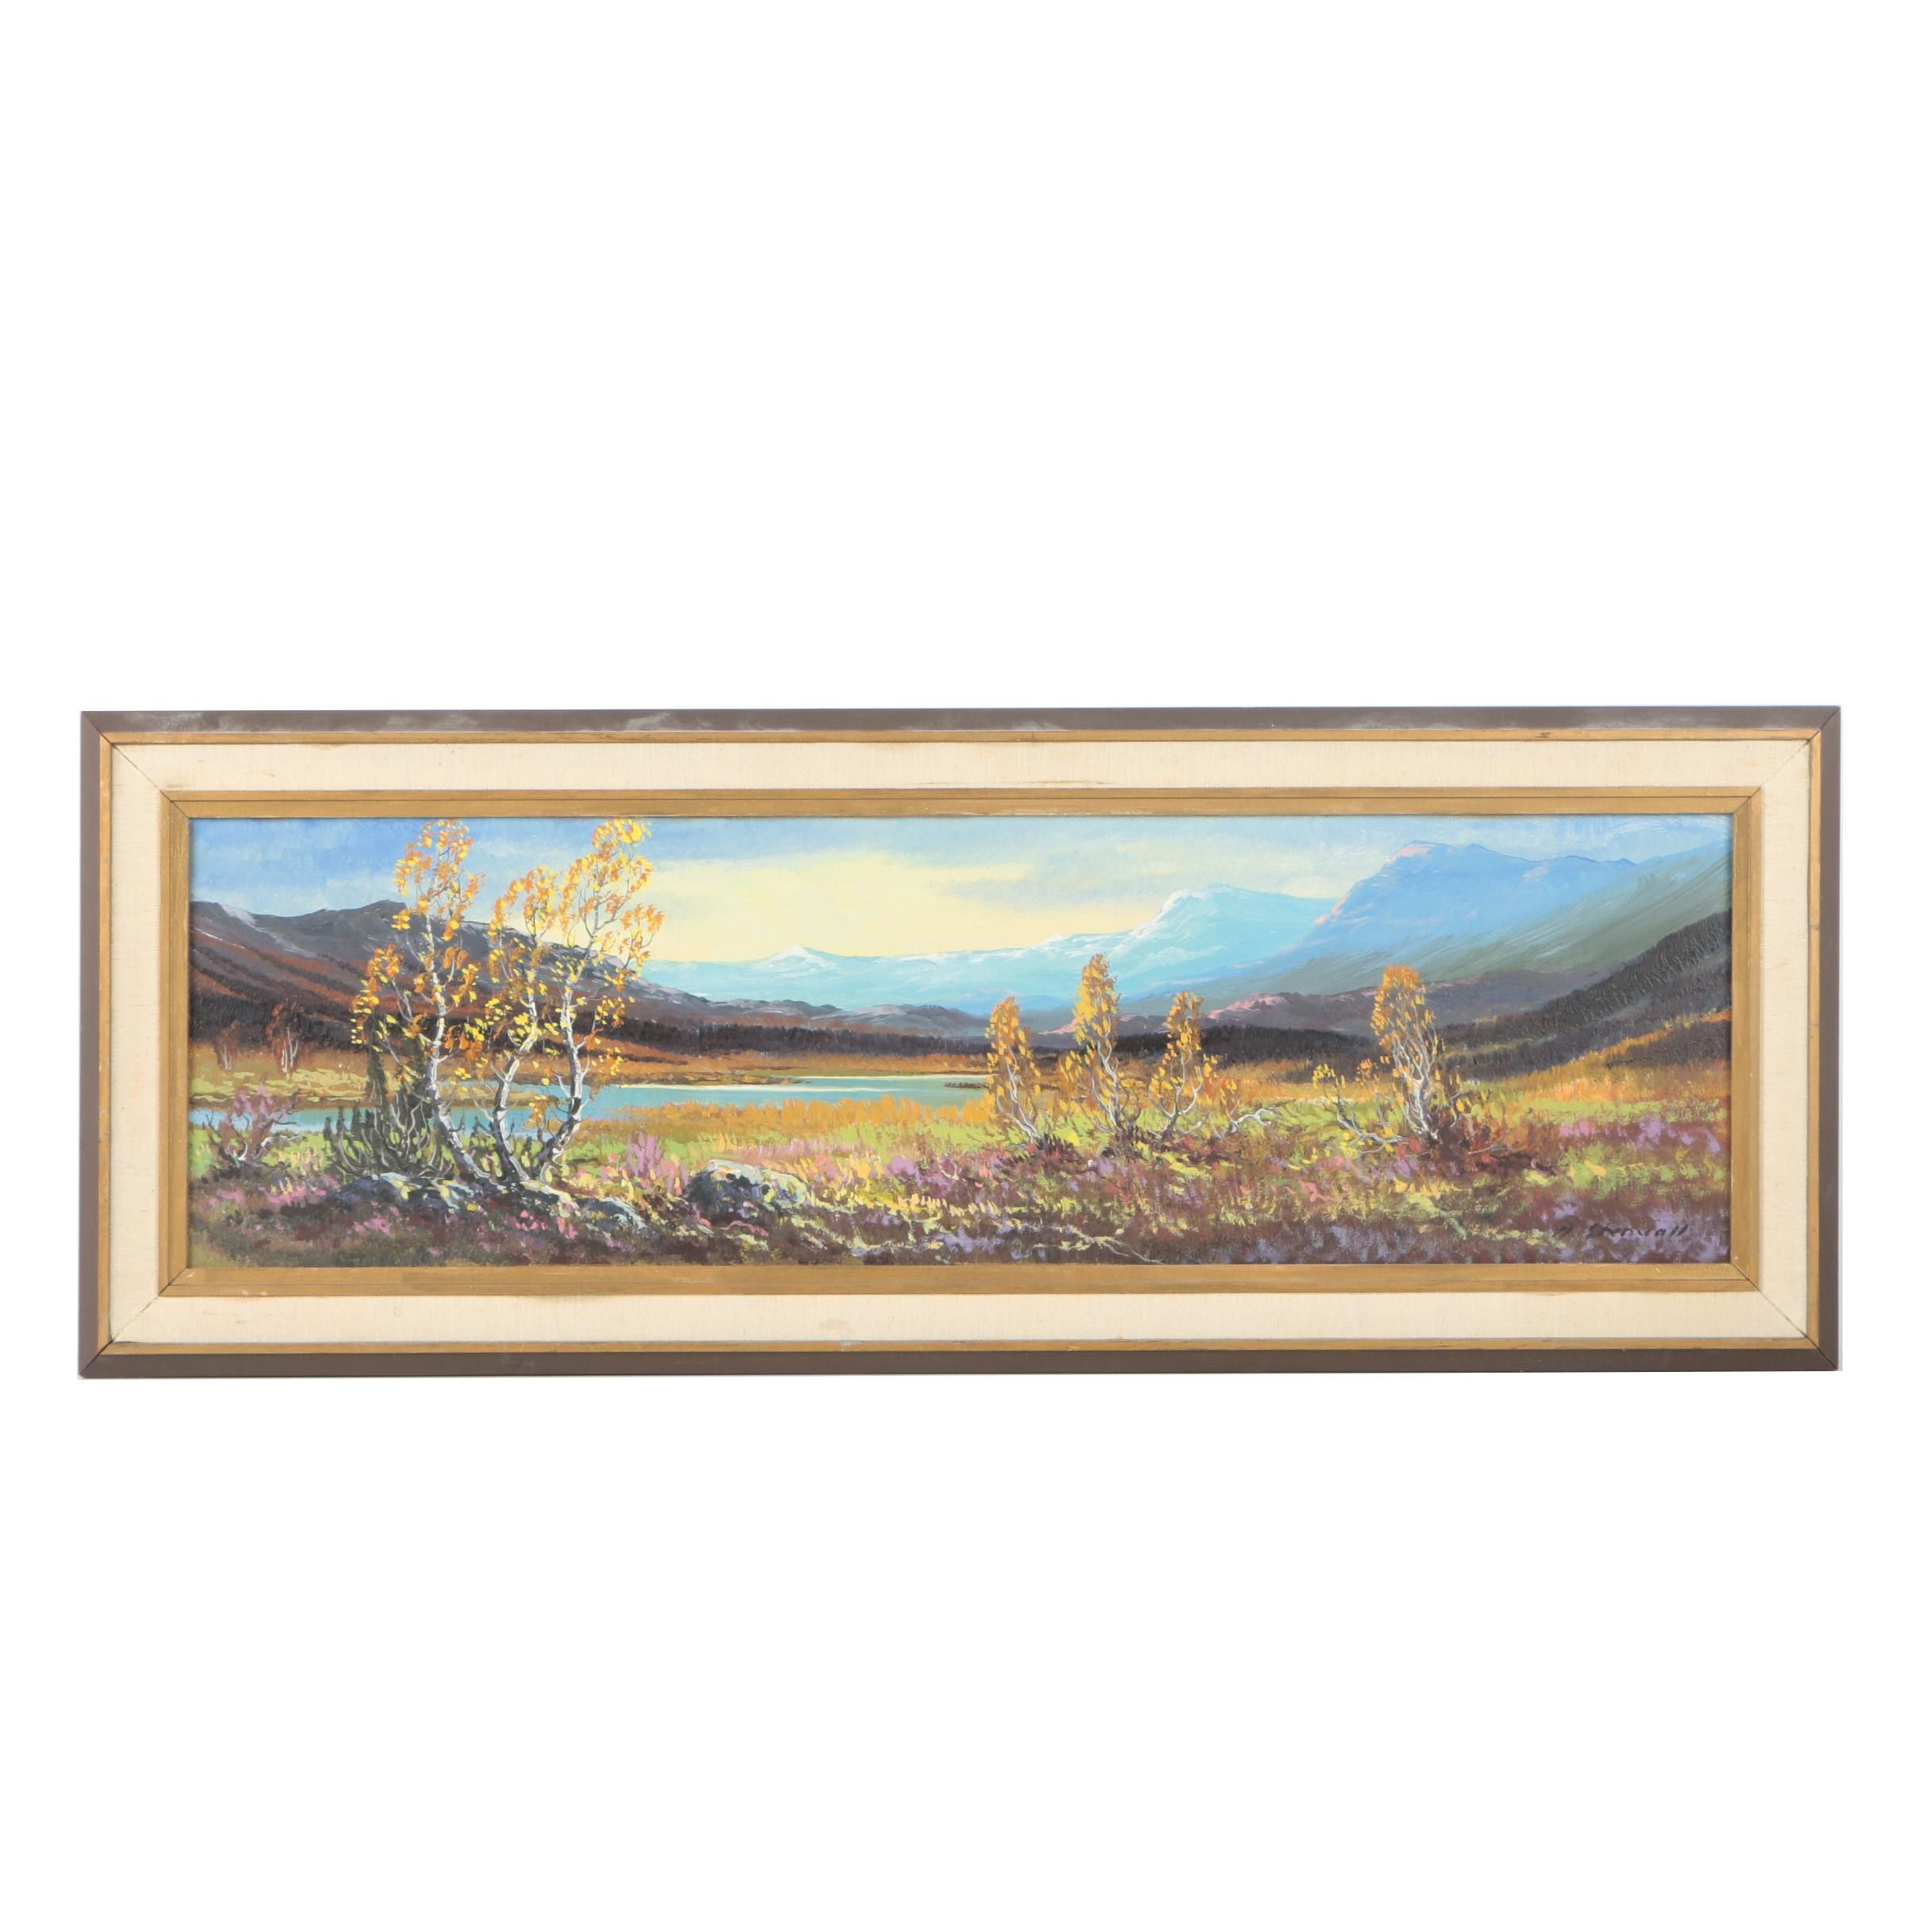 A. Stenvall Oil Painting of a Prairie